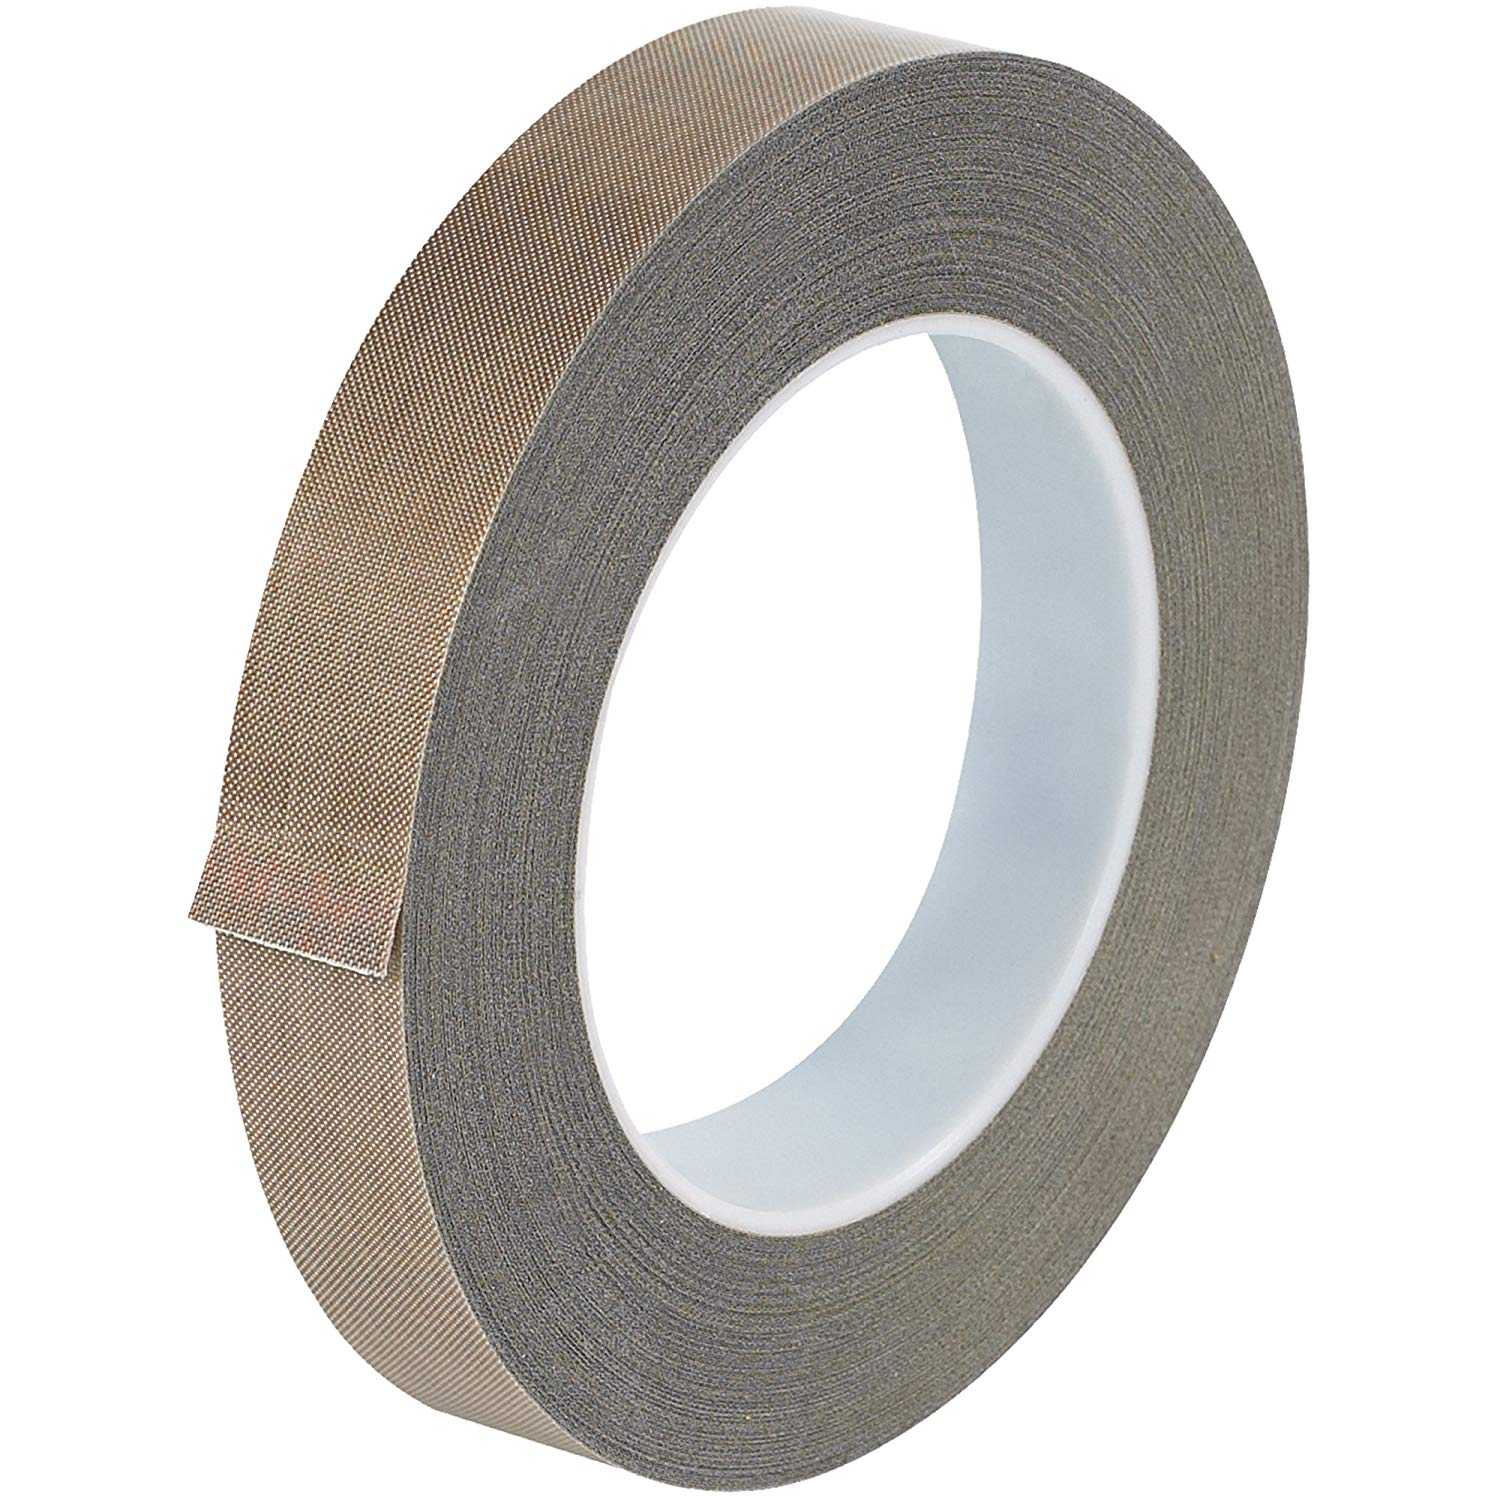 "Top Pack Supply PTFE Glass Cloth Tape, 3 Mil, 3/4"" x 36 yds. Brown (Case of 1)"